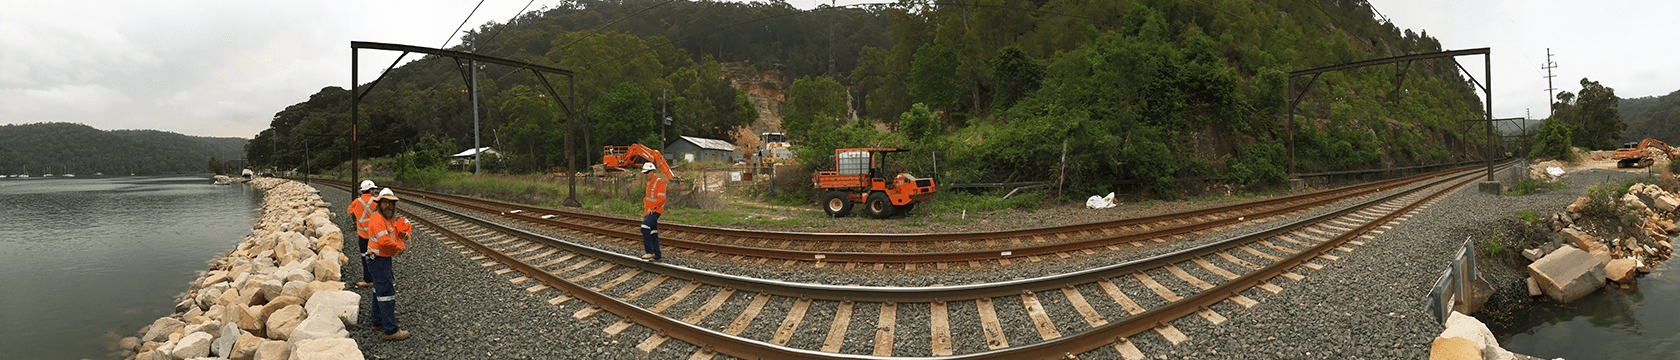 working on rail track